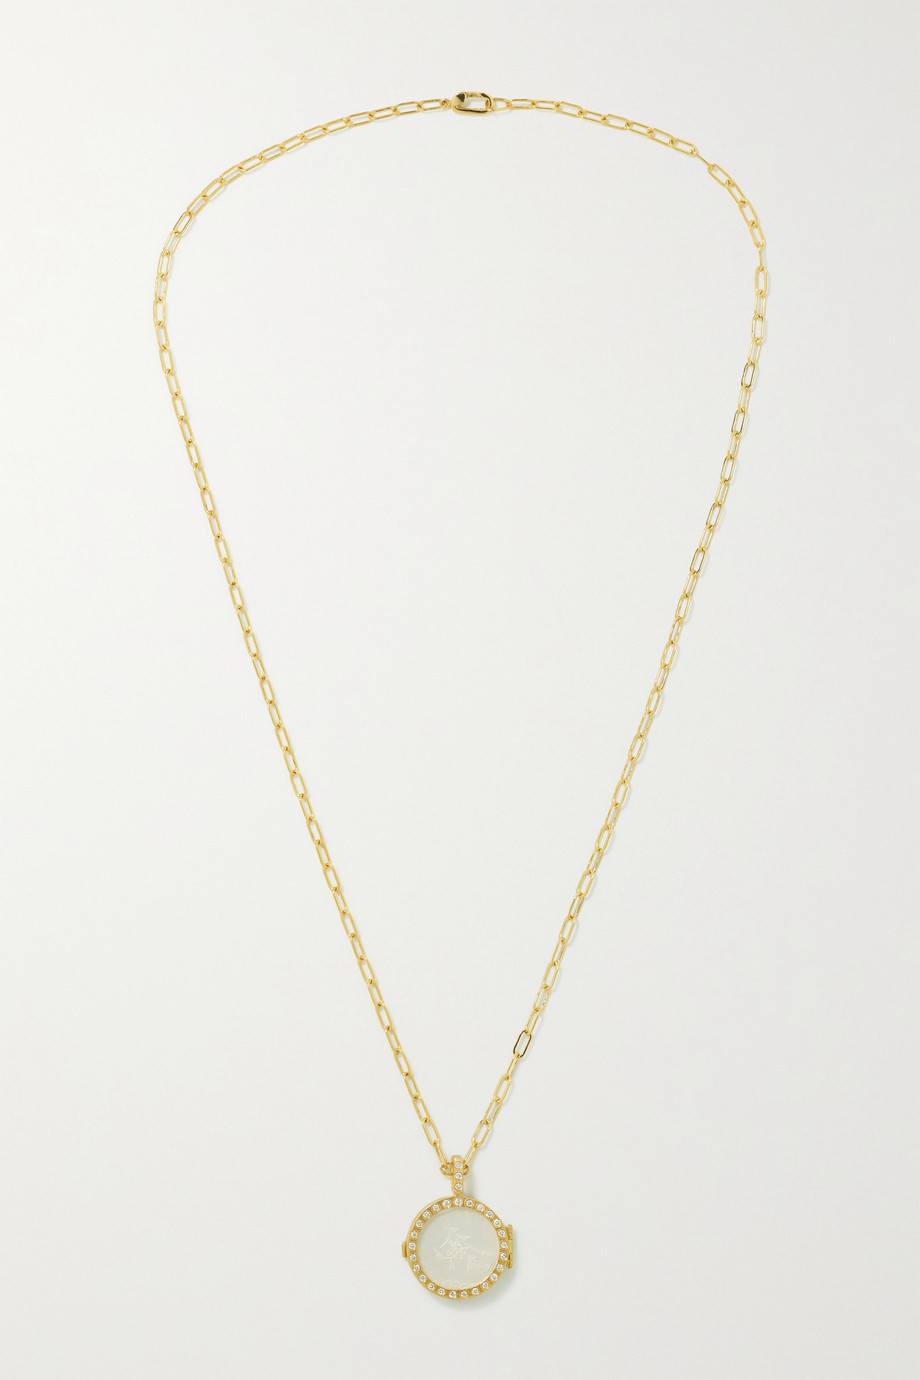 Octavia Elizabeth + NET SUSTAIN The Lover Locket 18-karat recycled gold, mother-of-pearl and diamond necklace